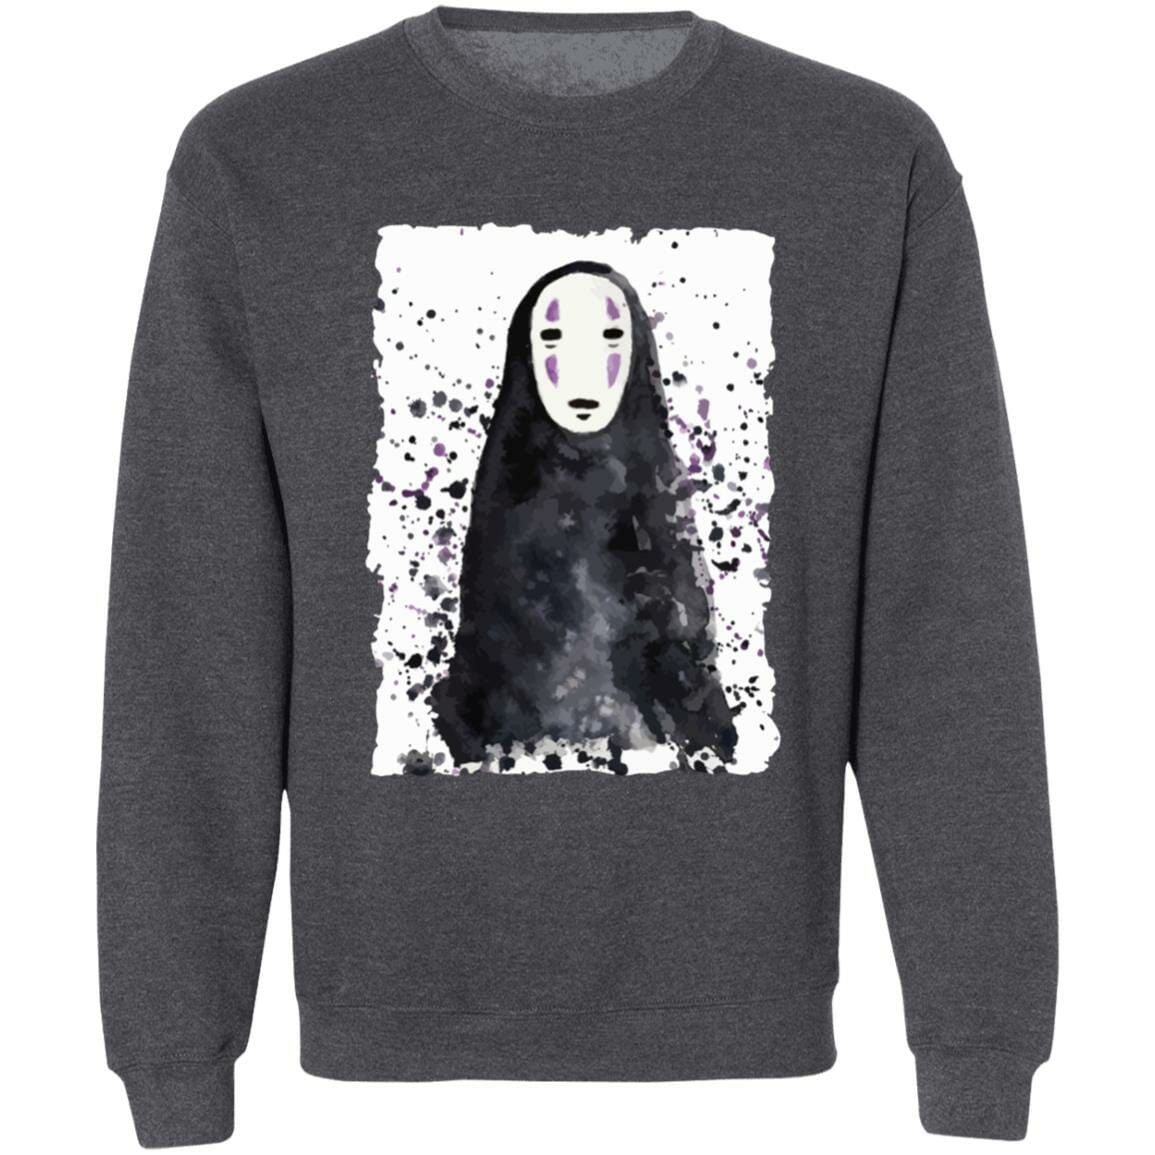 Spirited Away –  Kaonashi No Face Sweatshirt